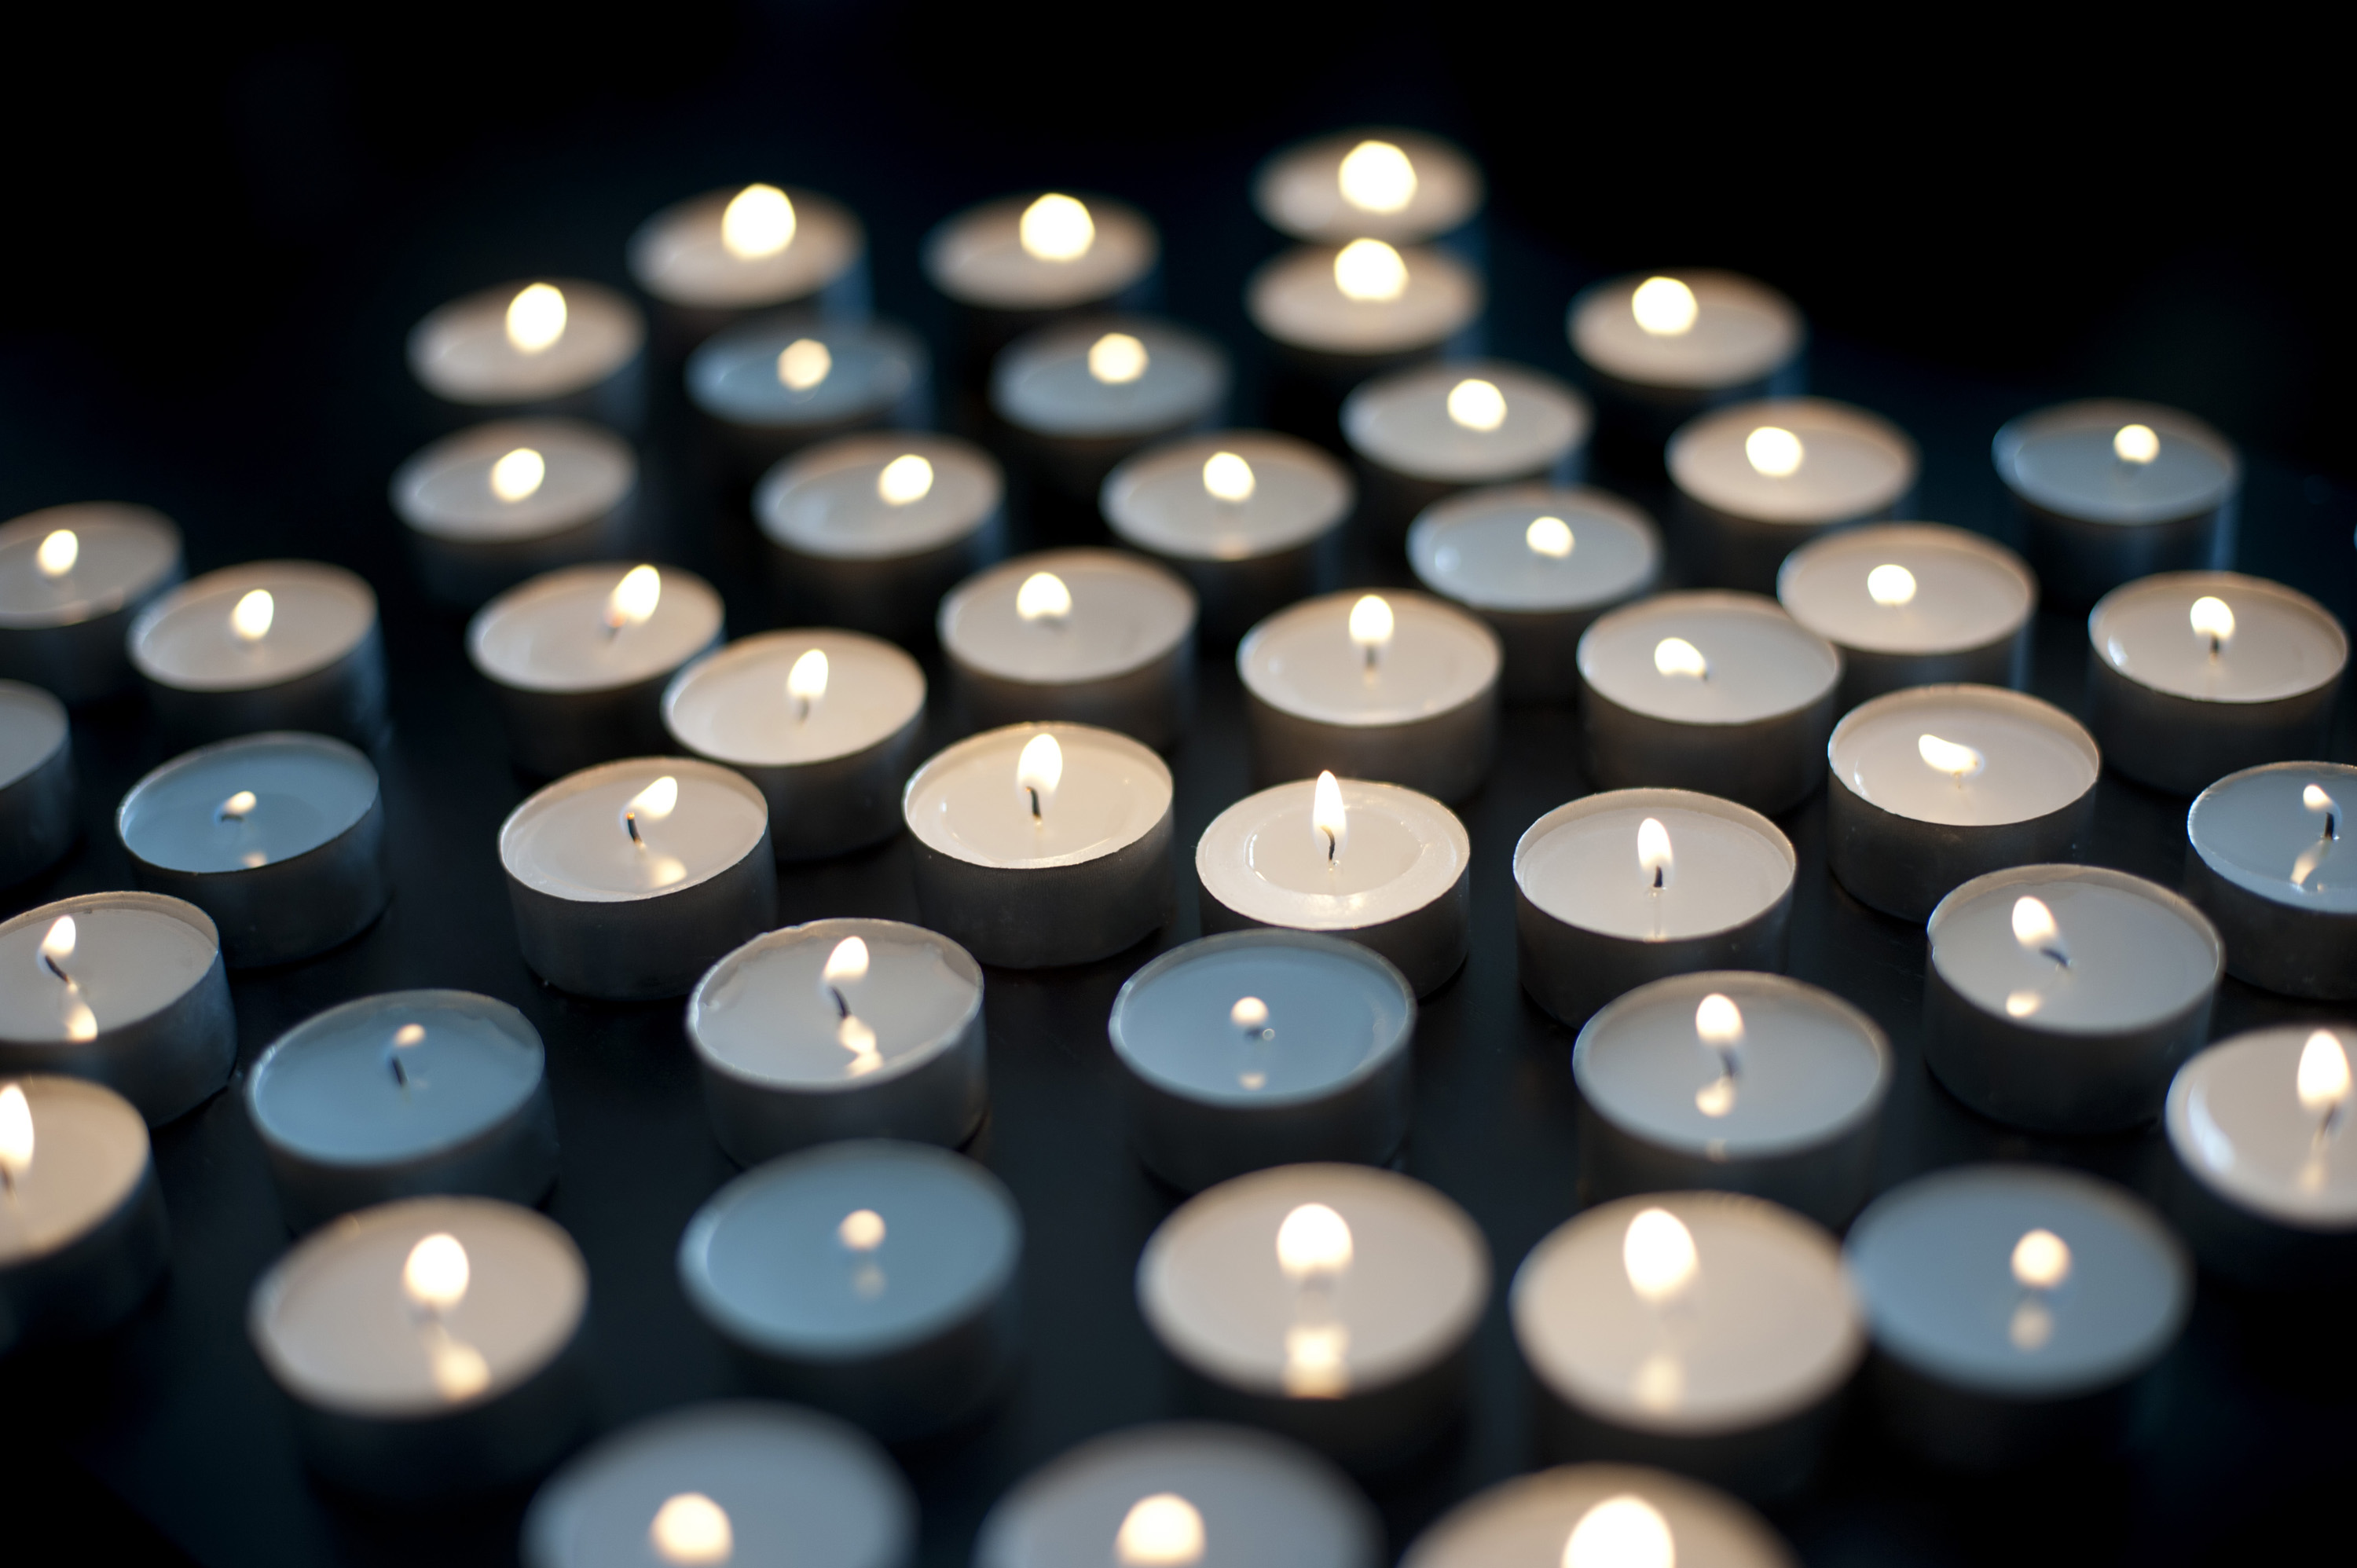 Array of small round burning candles celebrating the Christmas faith against a dark background